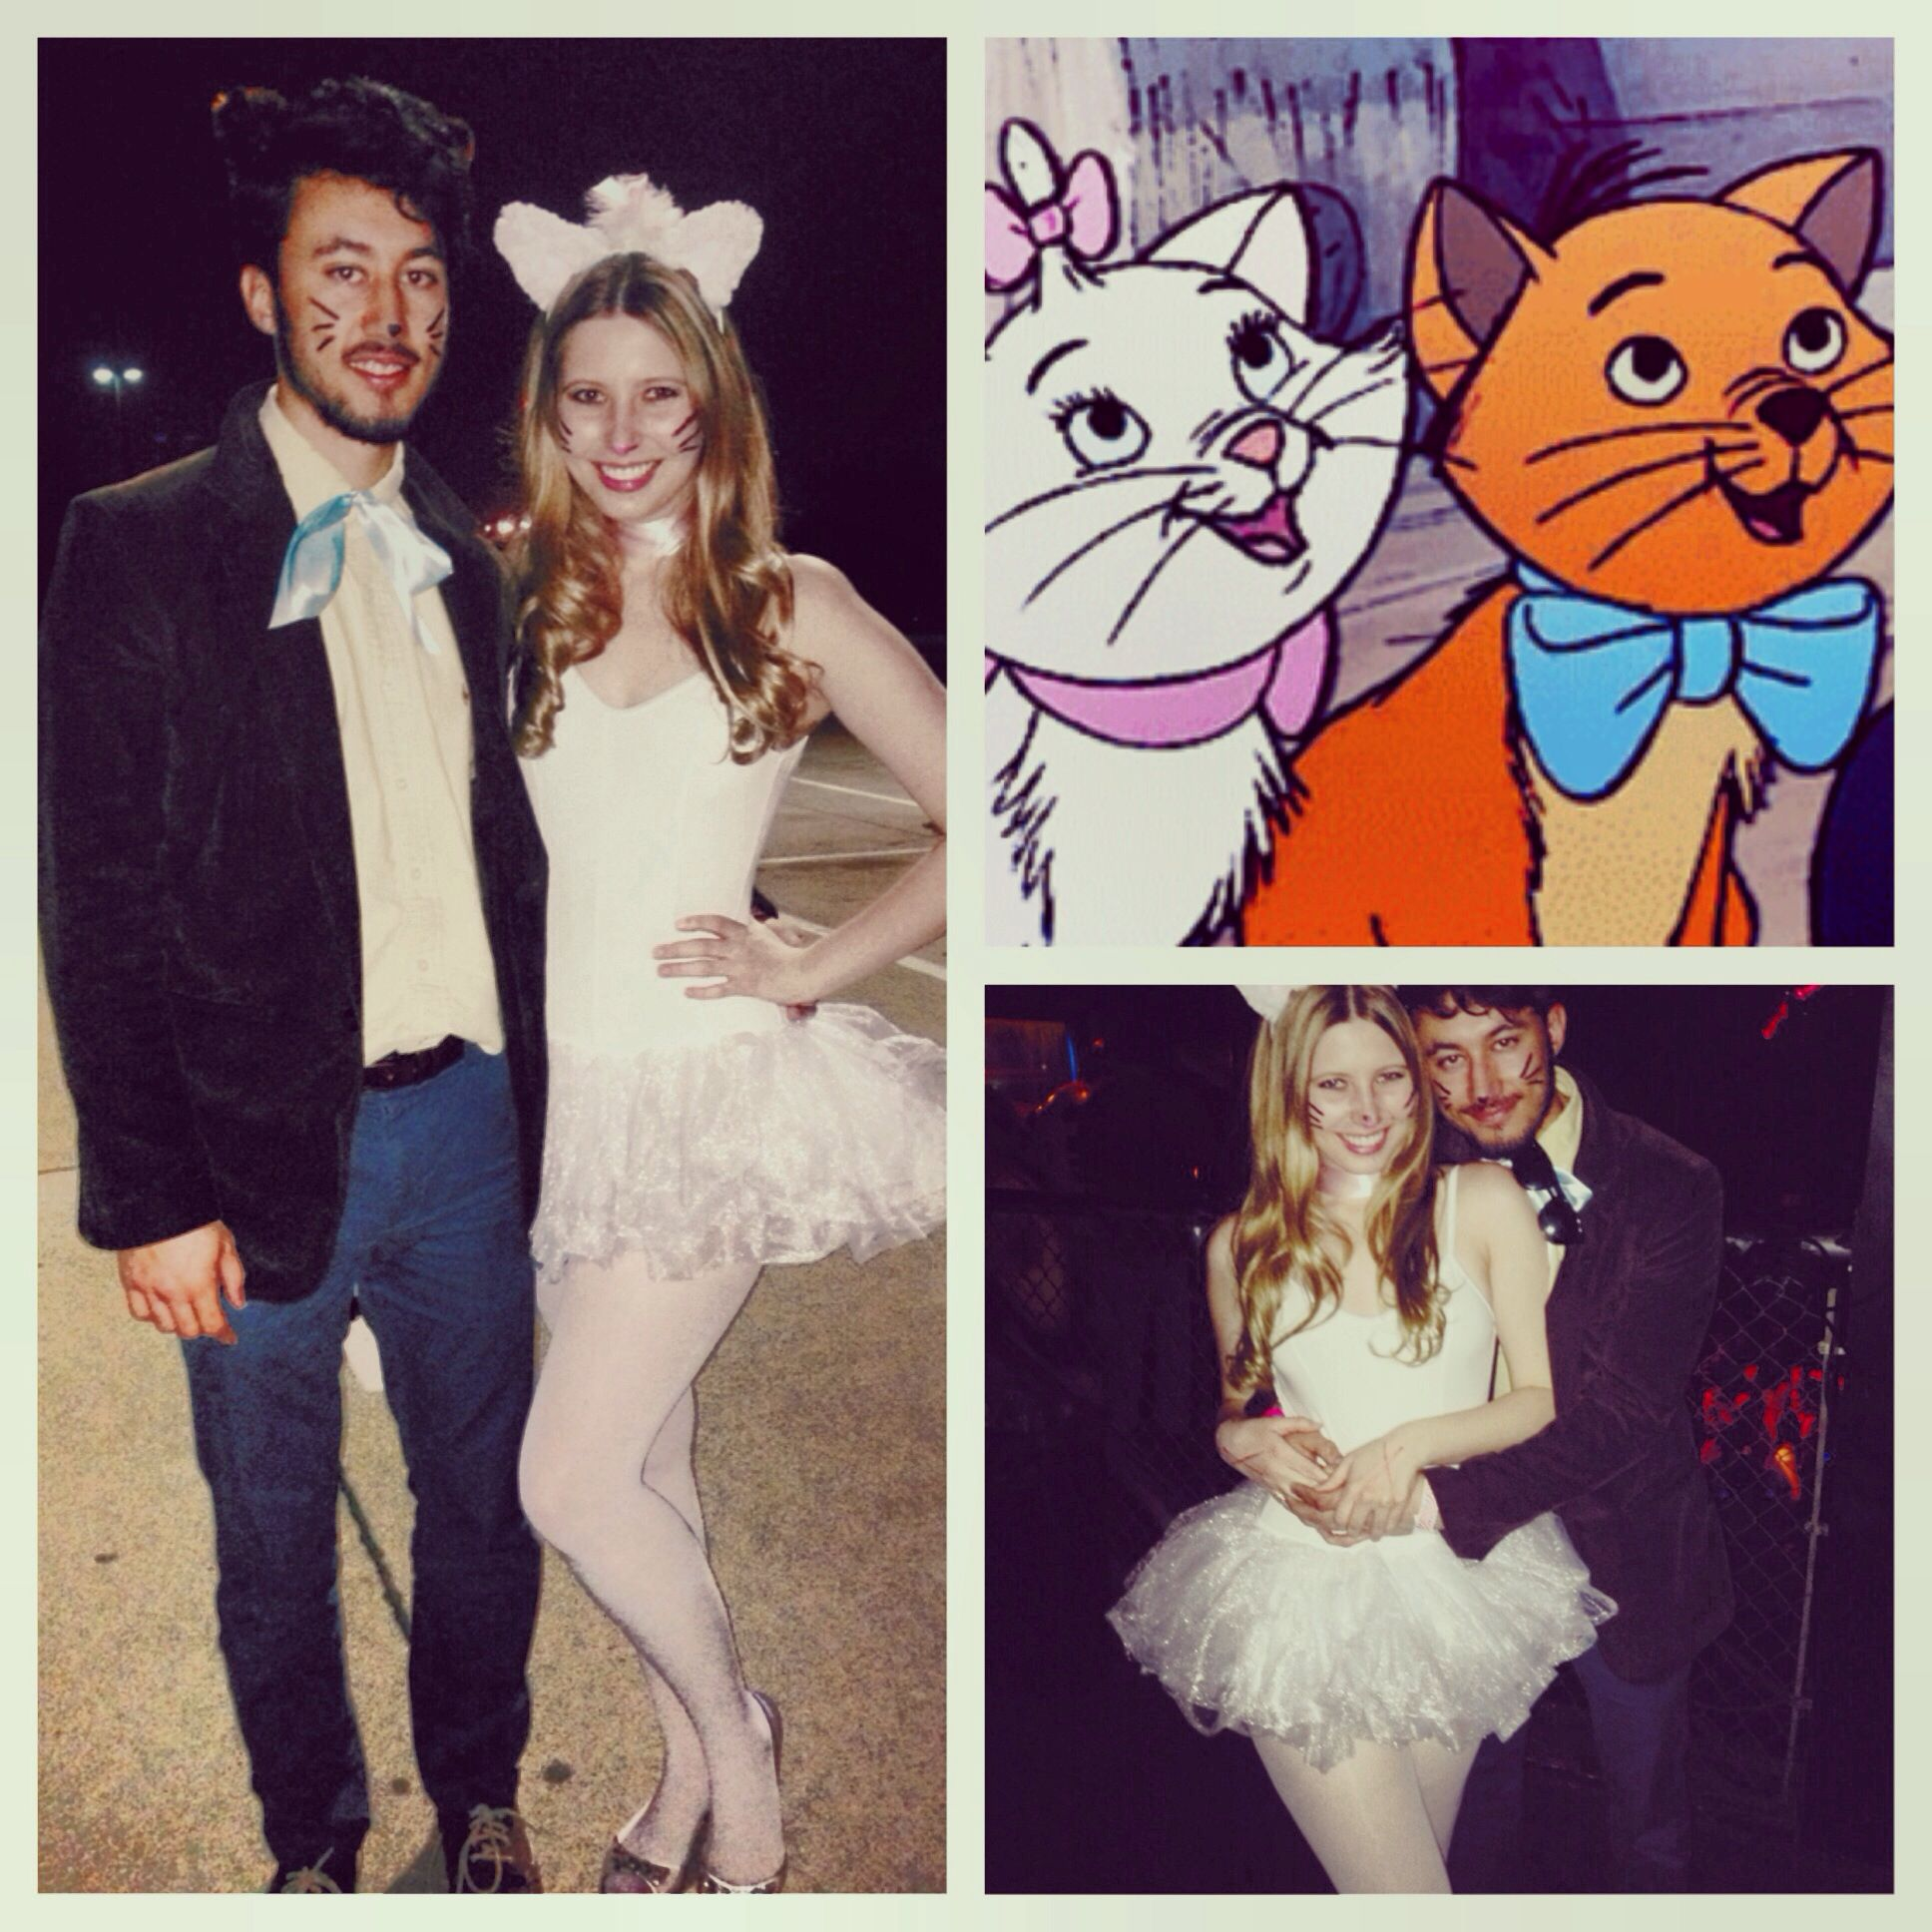 Halloween Toulouse.Aristocats Marie And Toulouse Couple S Cat Costume For A Disney Themed Mixer Via Instagram Pey Couple Halloween Costumes Disney Homecoming Couple Halloween